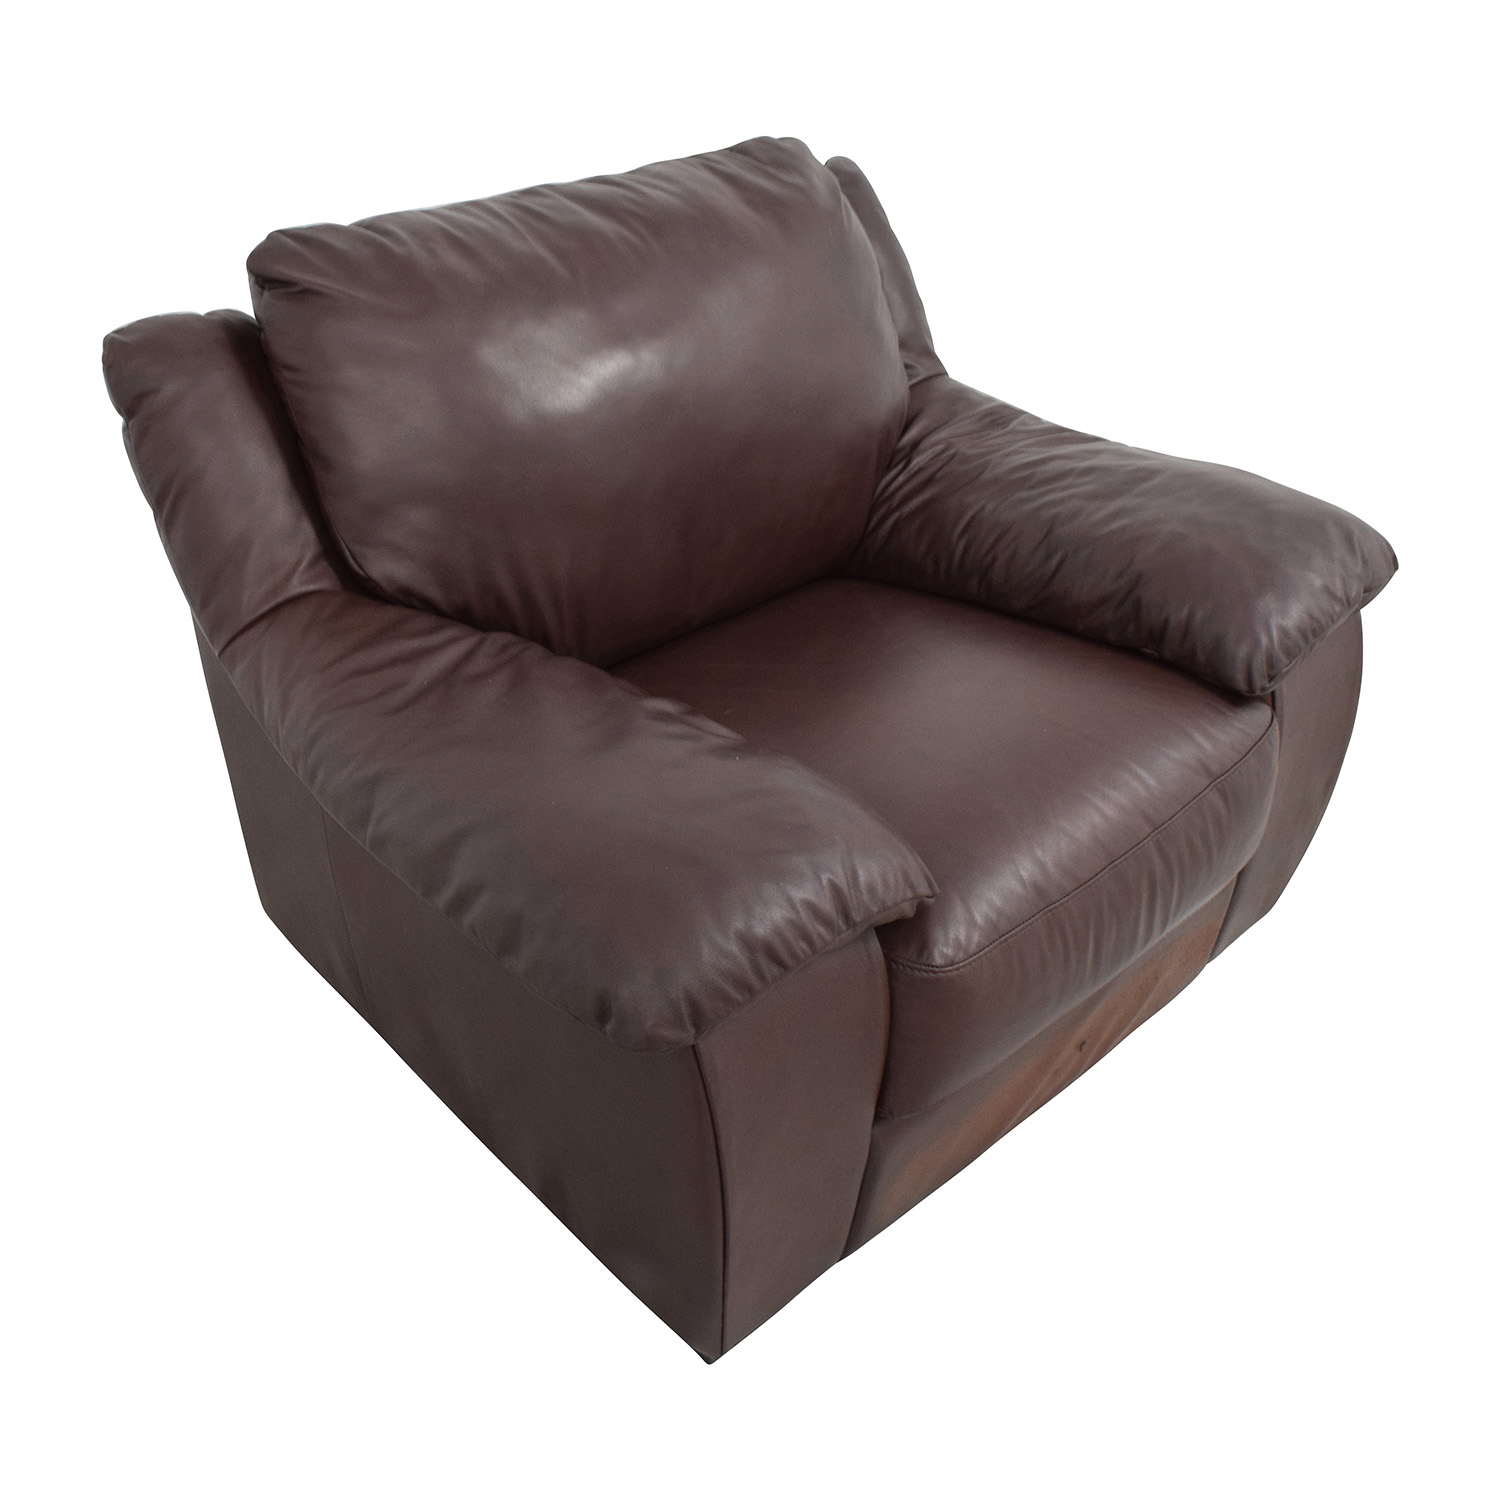 italsofa leather chair sofa com nyc 84 off brown plush armchair